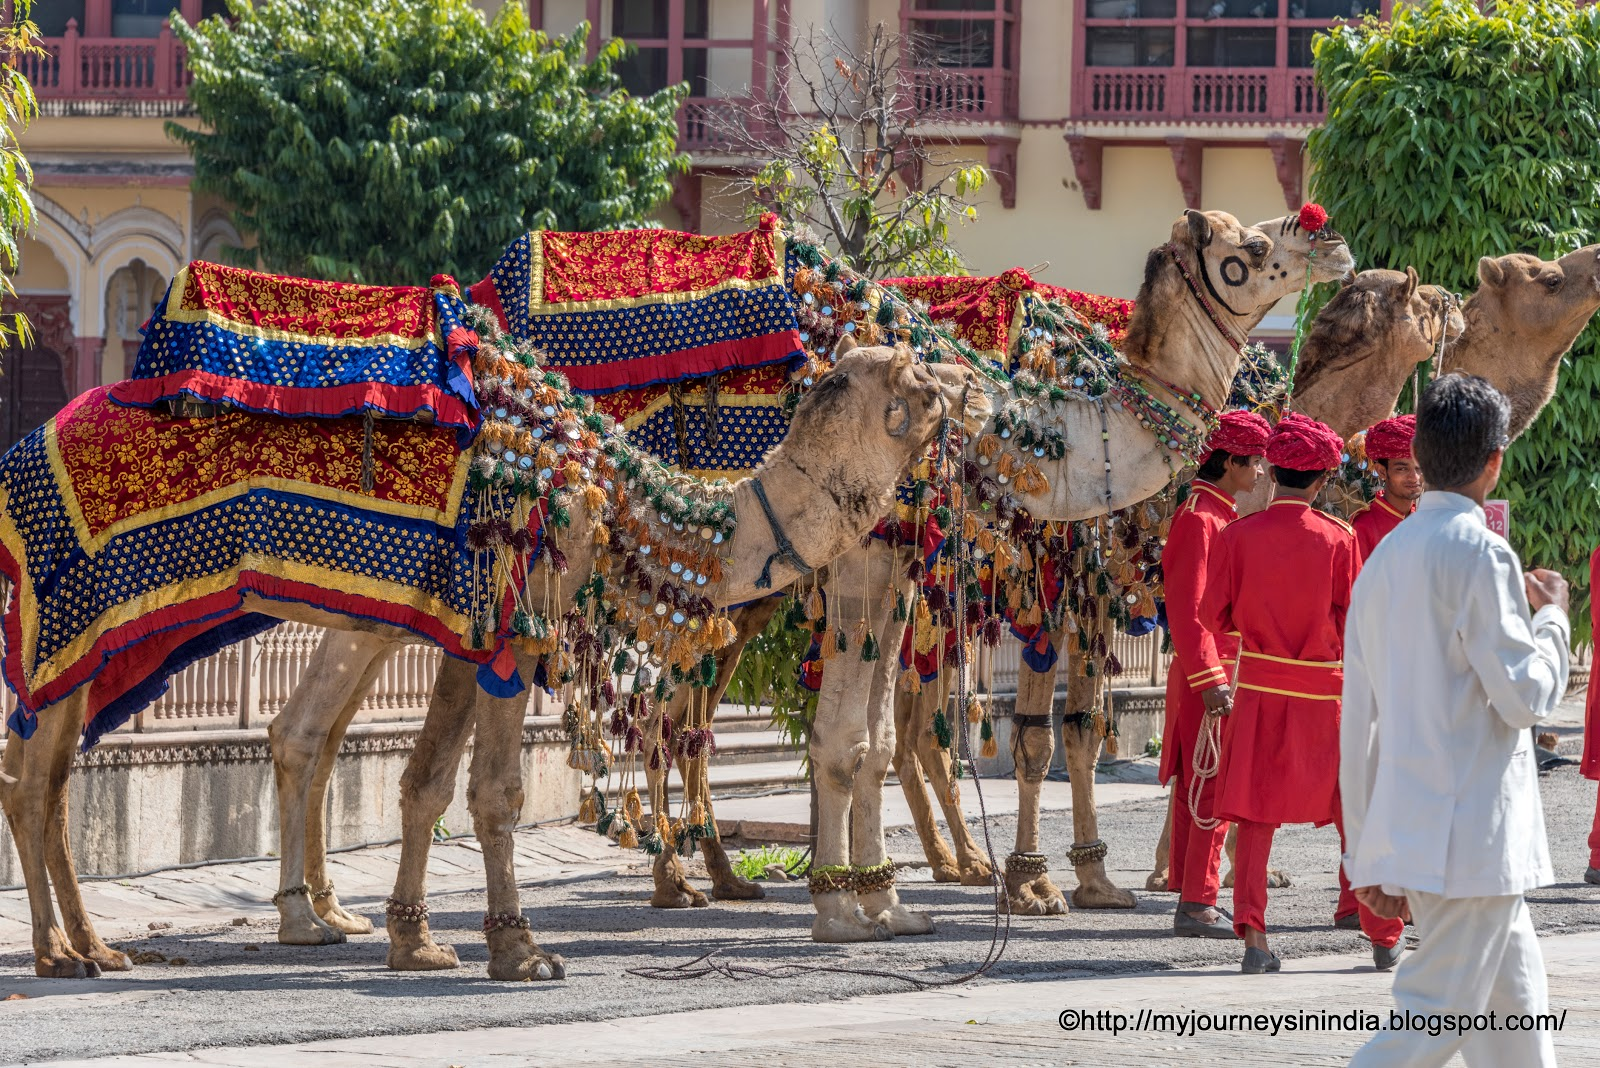 Beautifully Dressed Camels at City Palace Jaipur